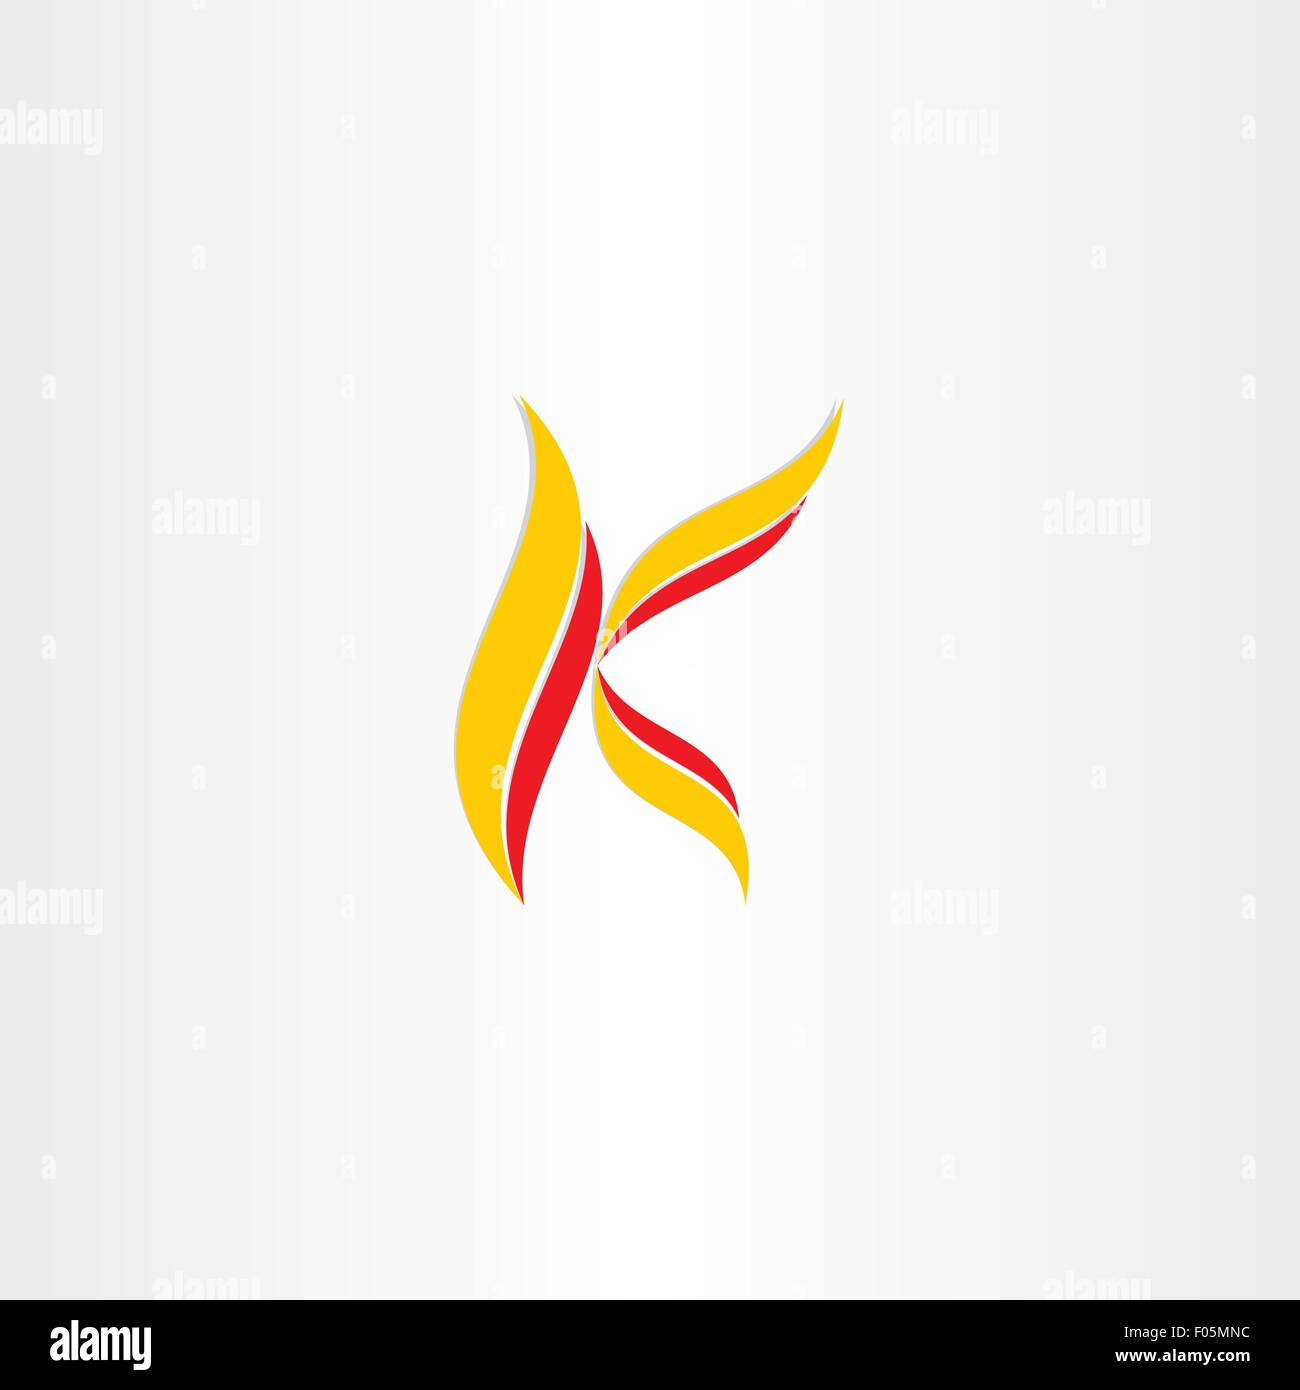 yellow red icon letter k logo design - Stock Vector